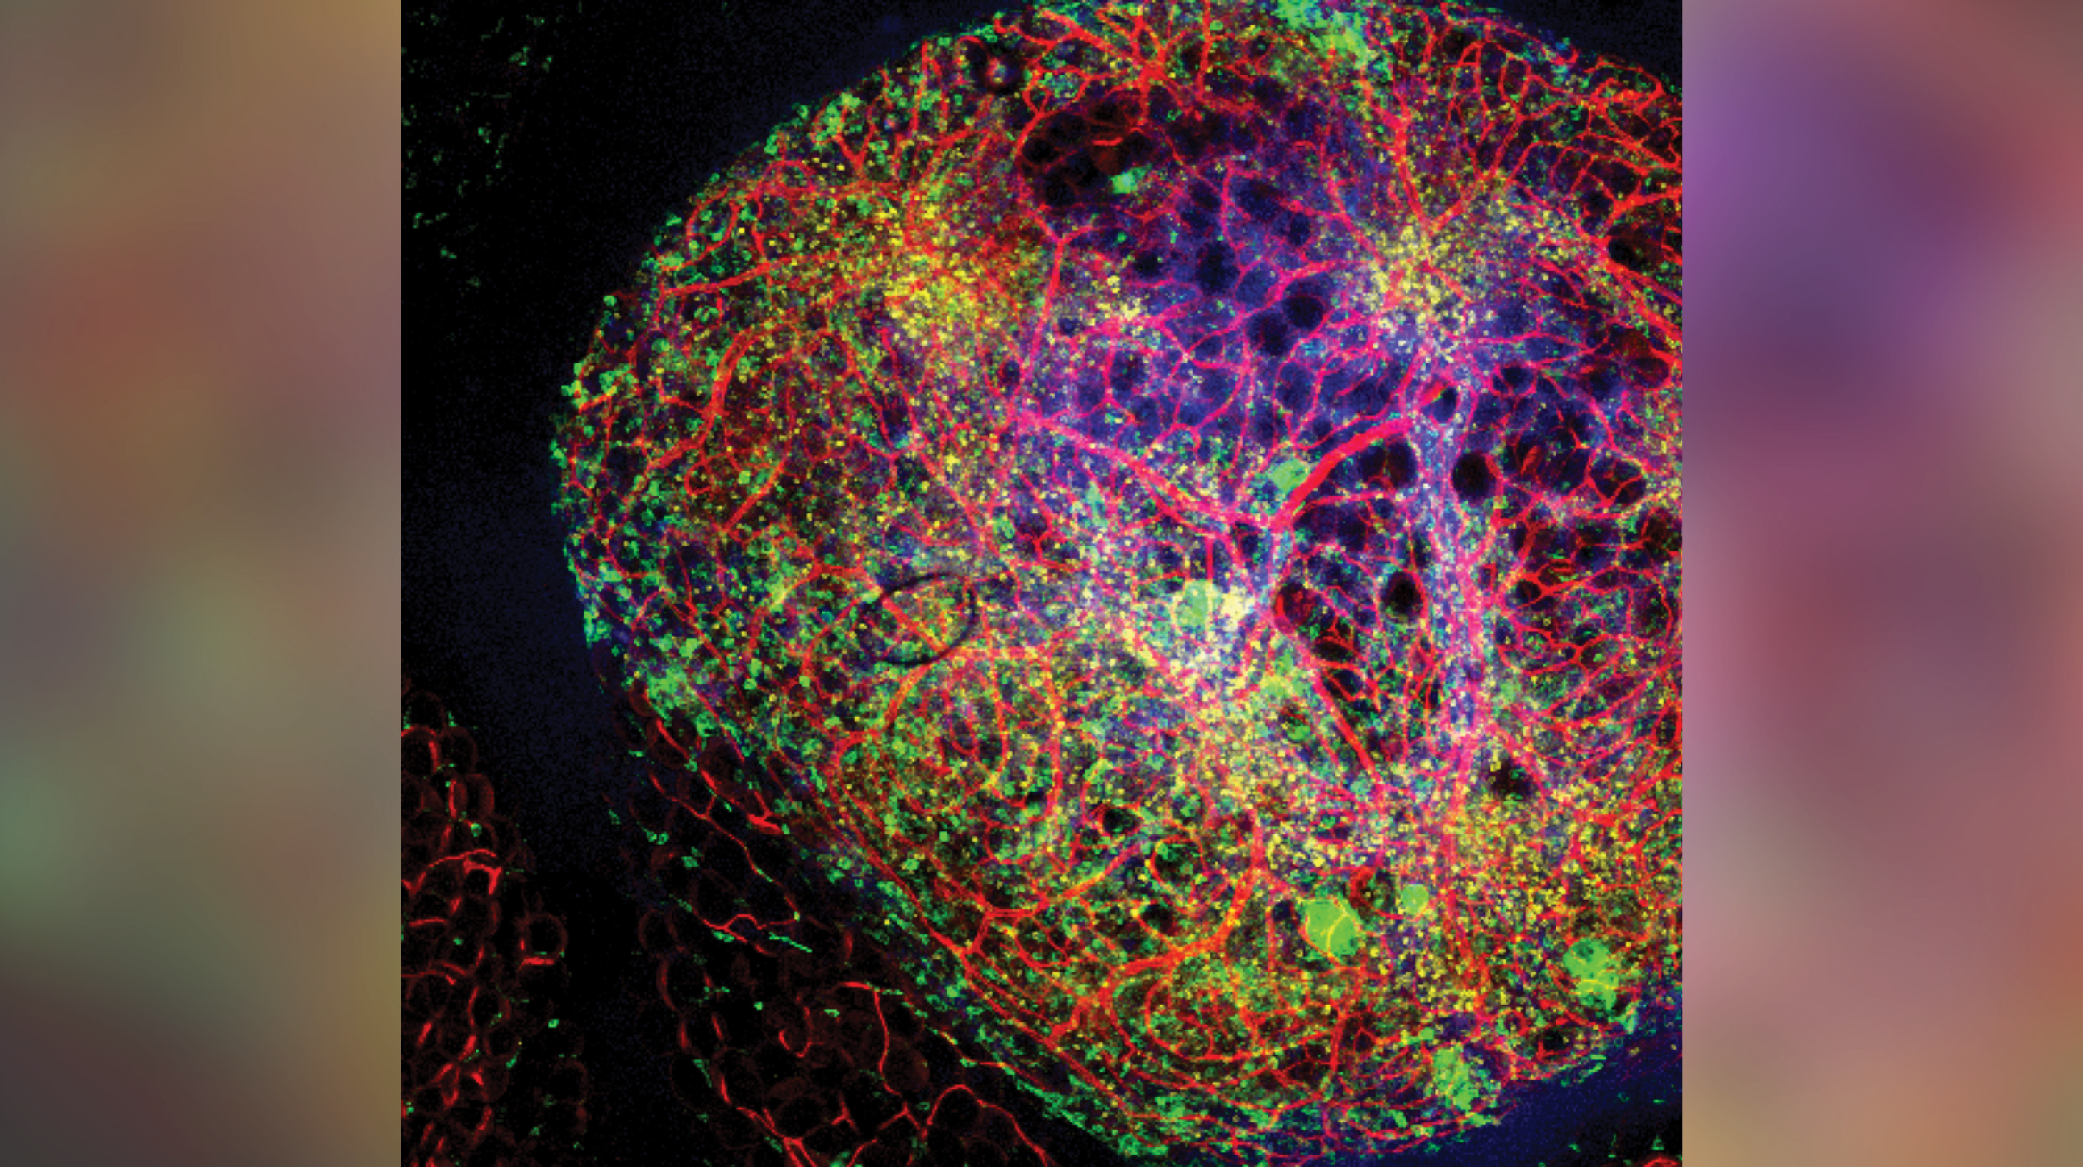 A colorful picture of a cell and its blood vessels.